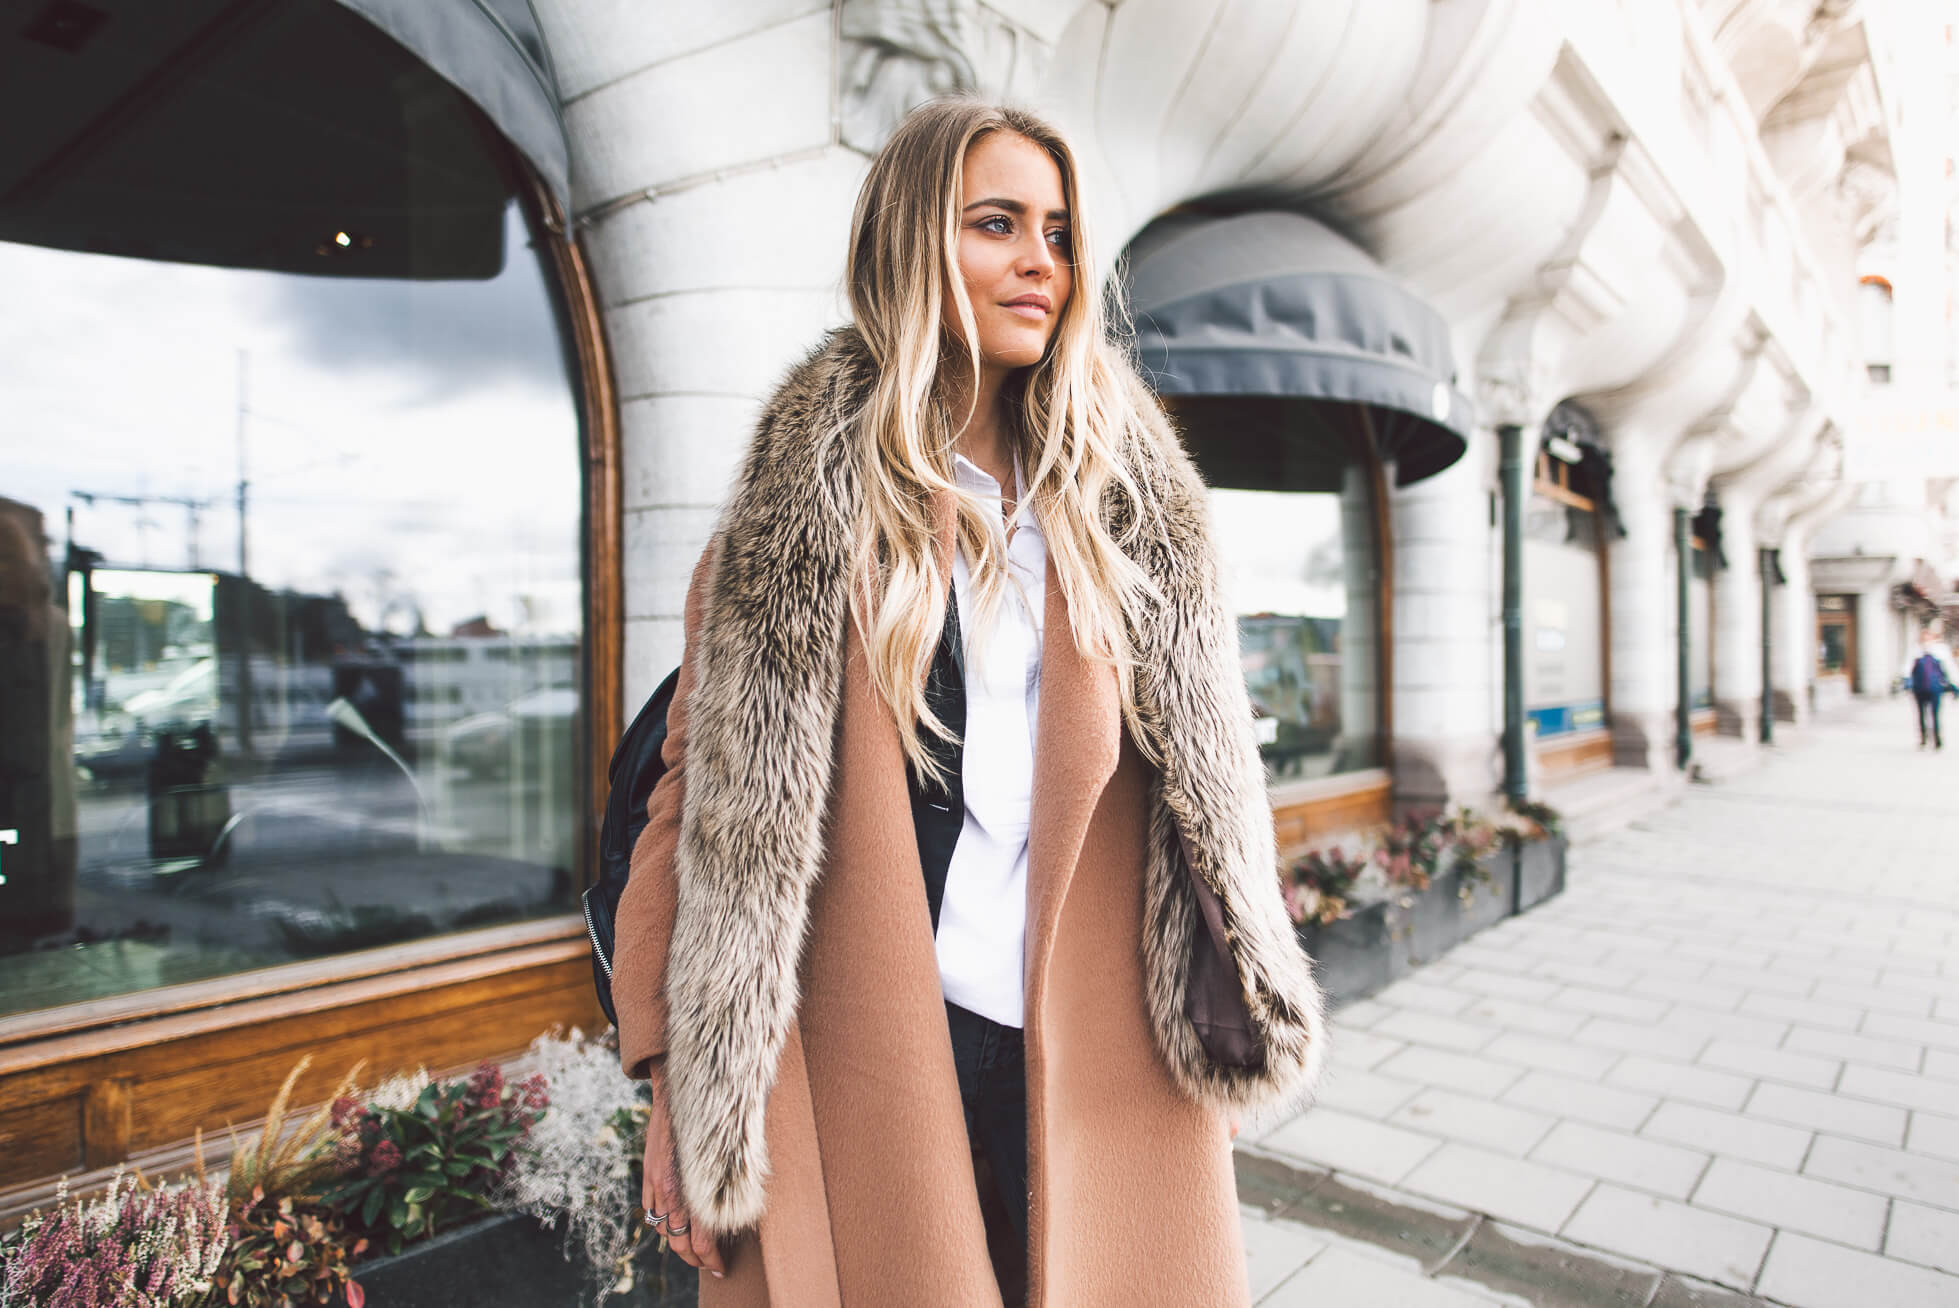 janni-deler-city-vibes-outfitDSC_8637